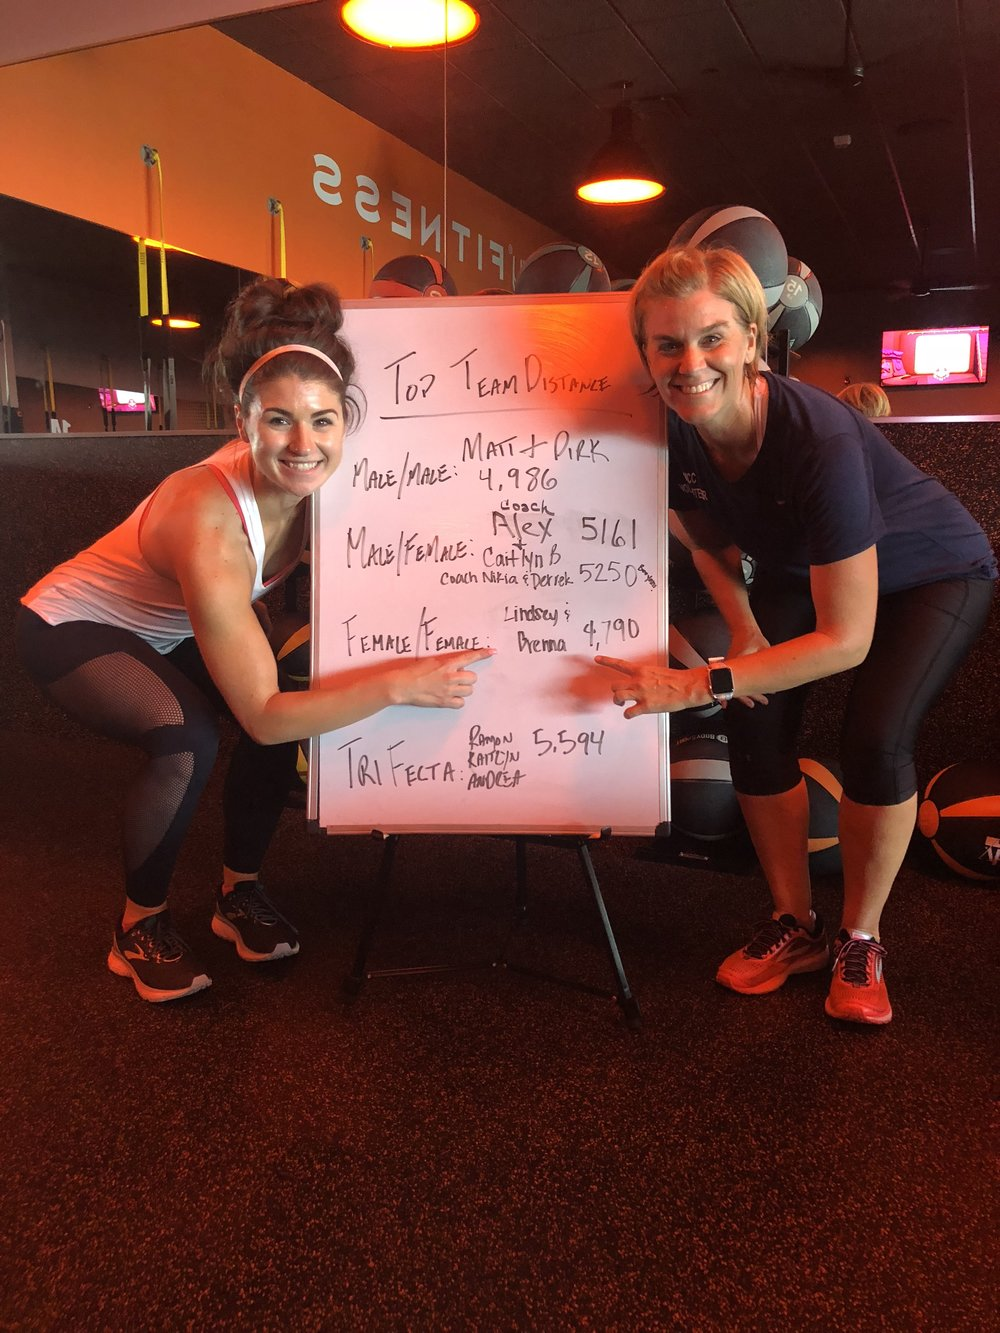 We finally made the board! Favorite partner workout ever.